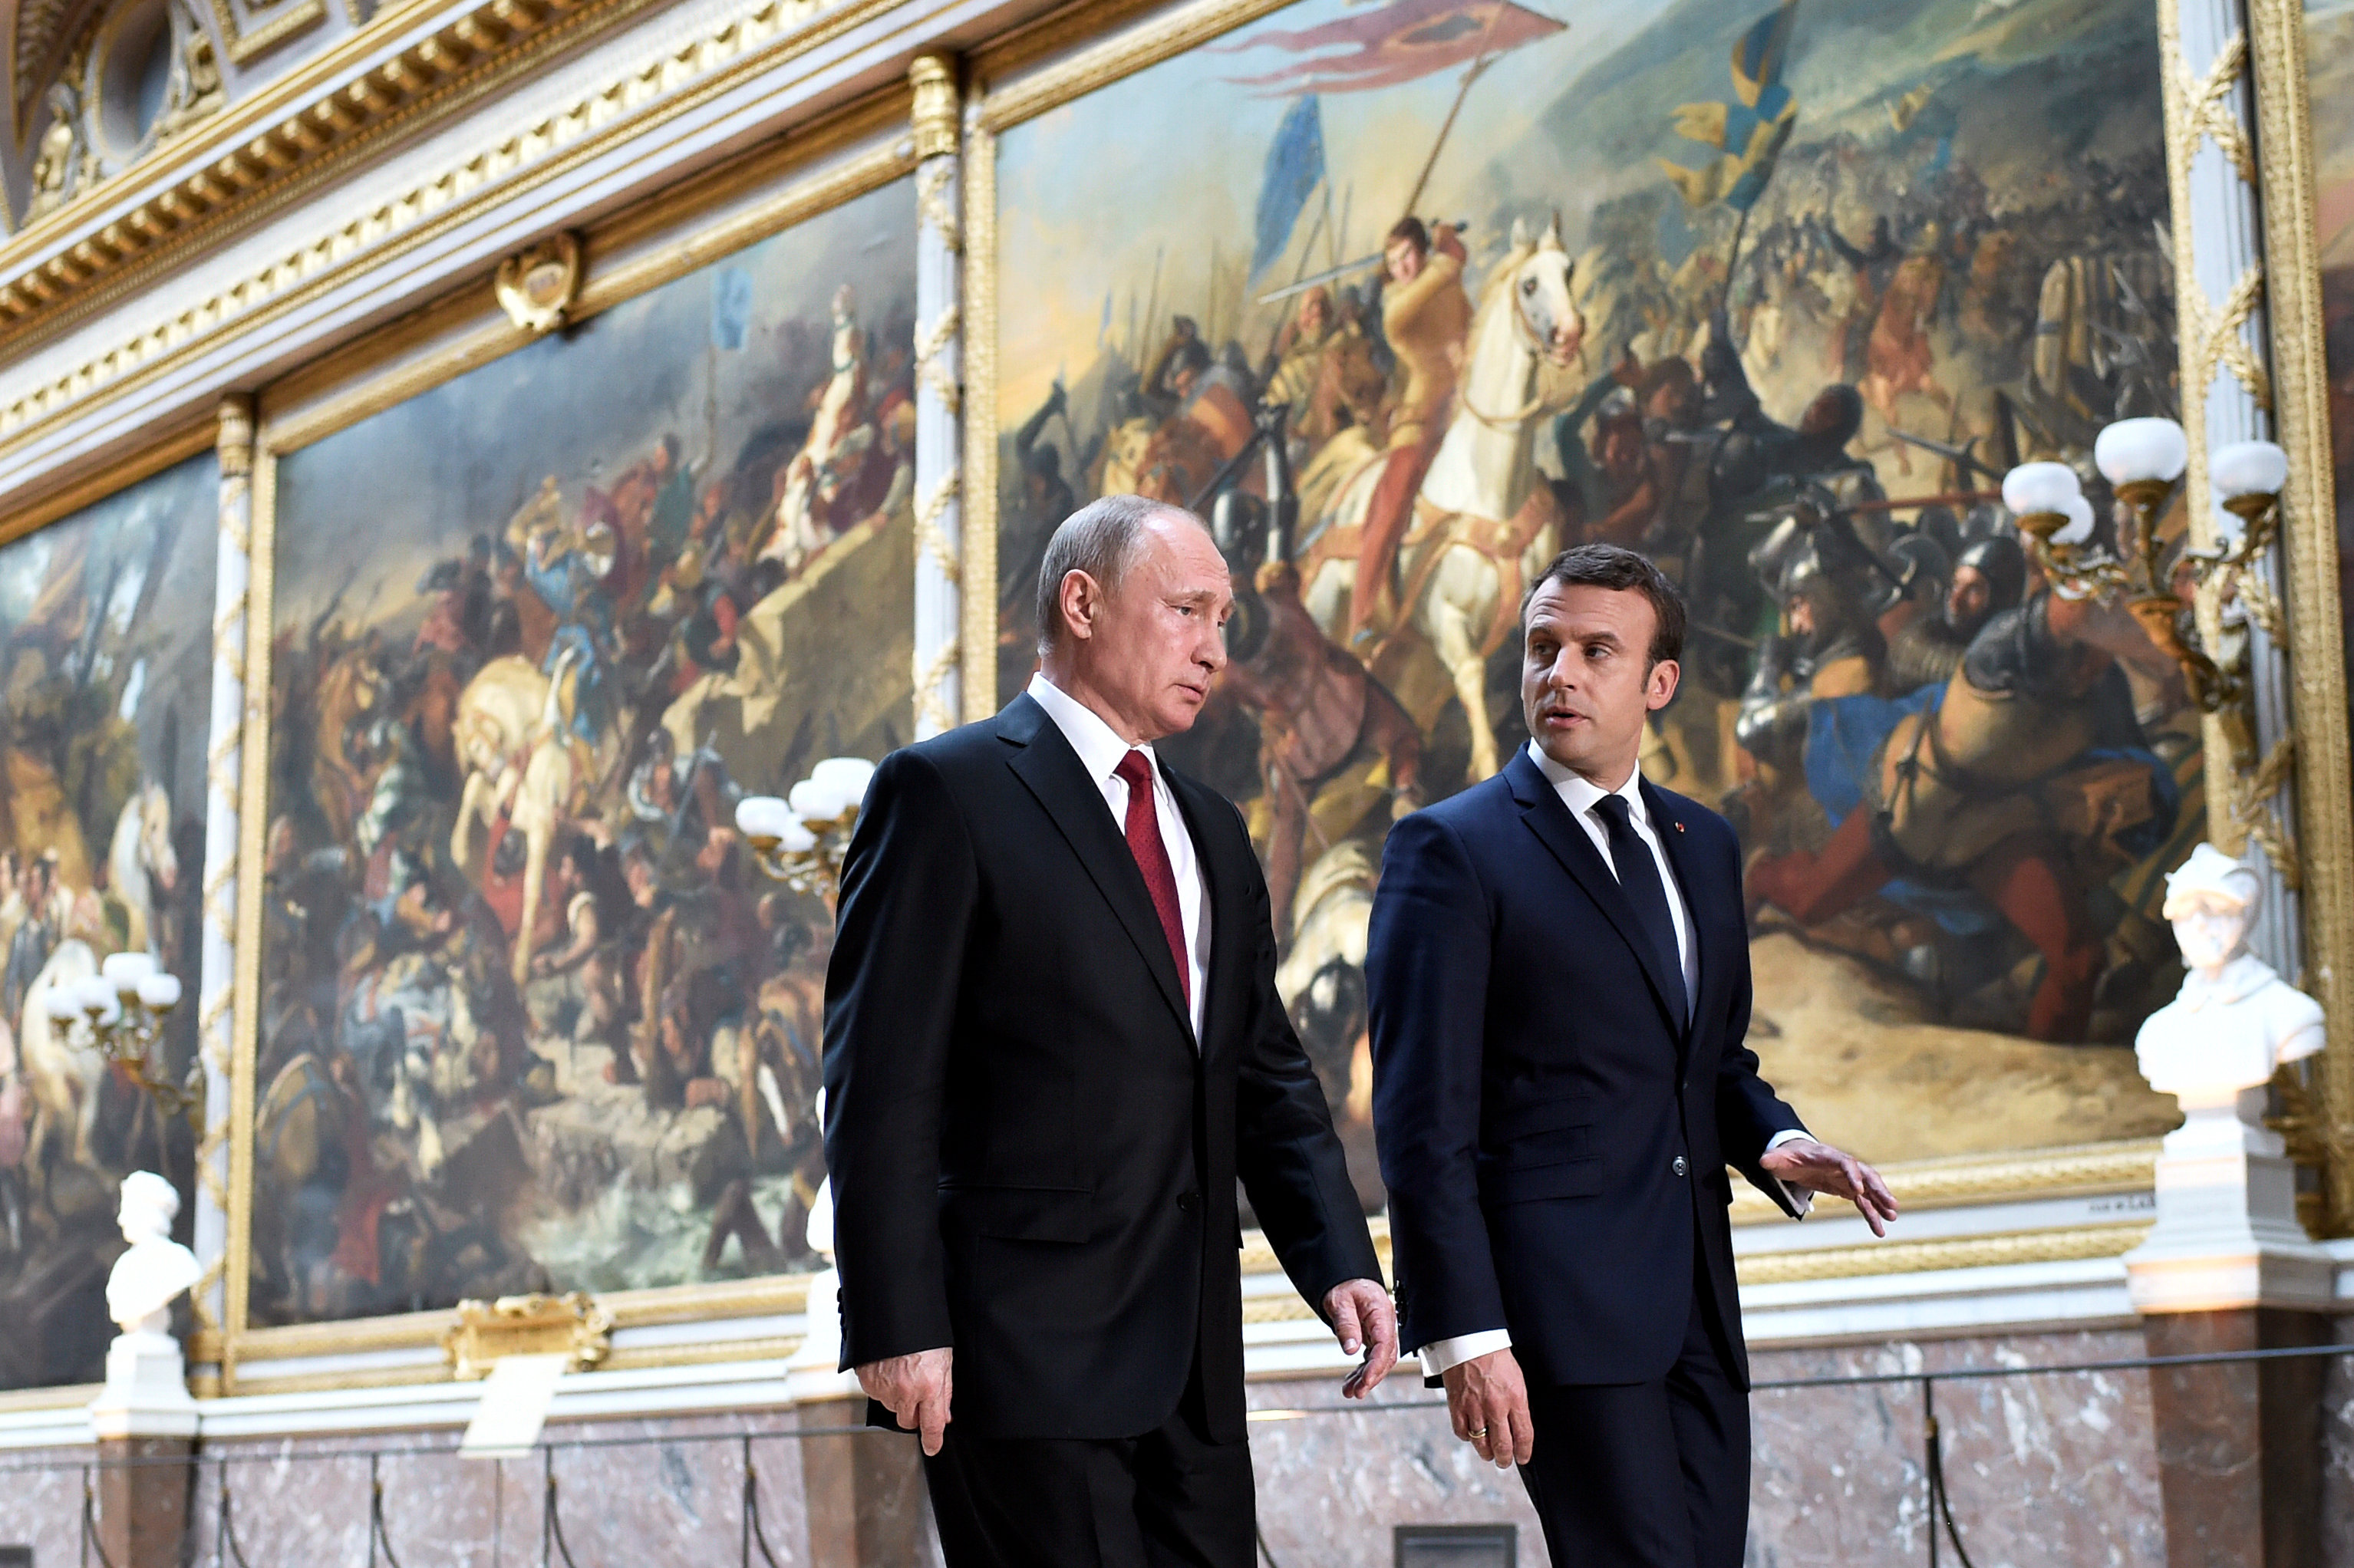 French President Emmanuel Macron (R) speaks to Russian President Vladimir Putin (L) in the Galerie des Batailles (Gallery of Battles) as they arrive for a joint press conference at the Chateau de Versailles before the opening of an exhibition marking 300 years of diplomatic ties between the two countries in Versailles, France, May 29, 2017.